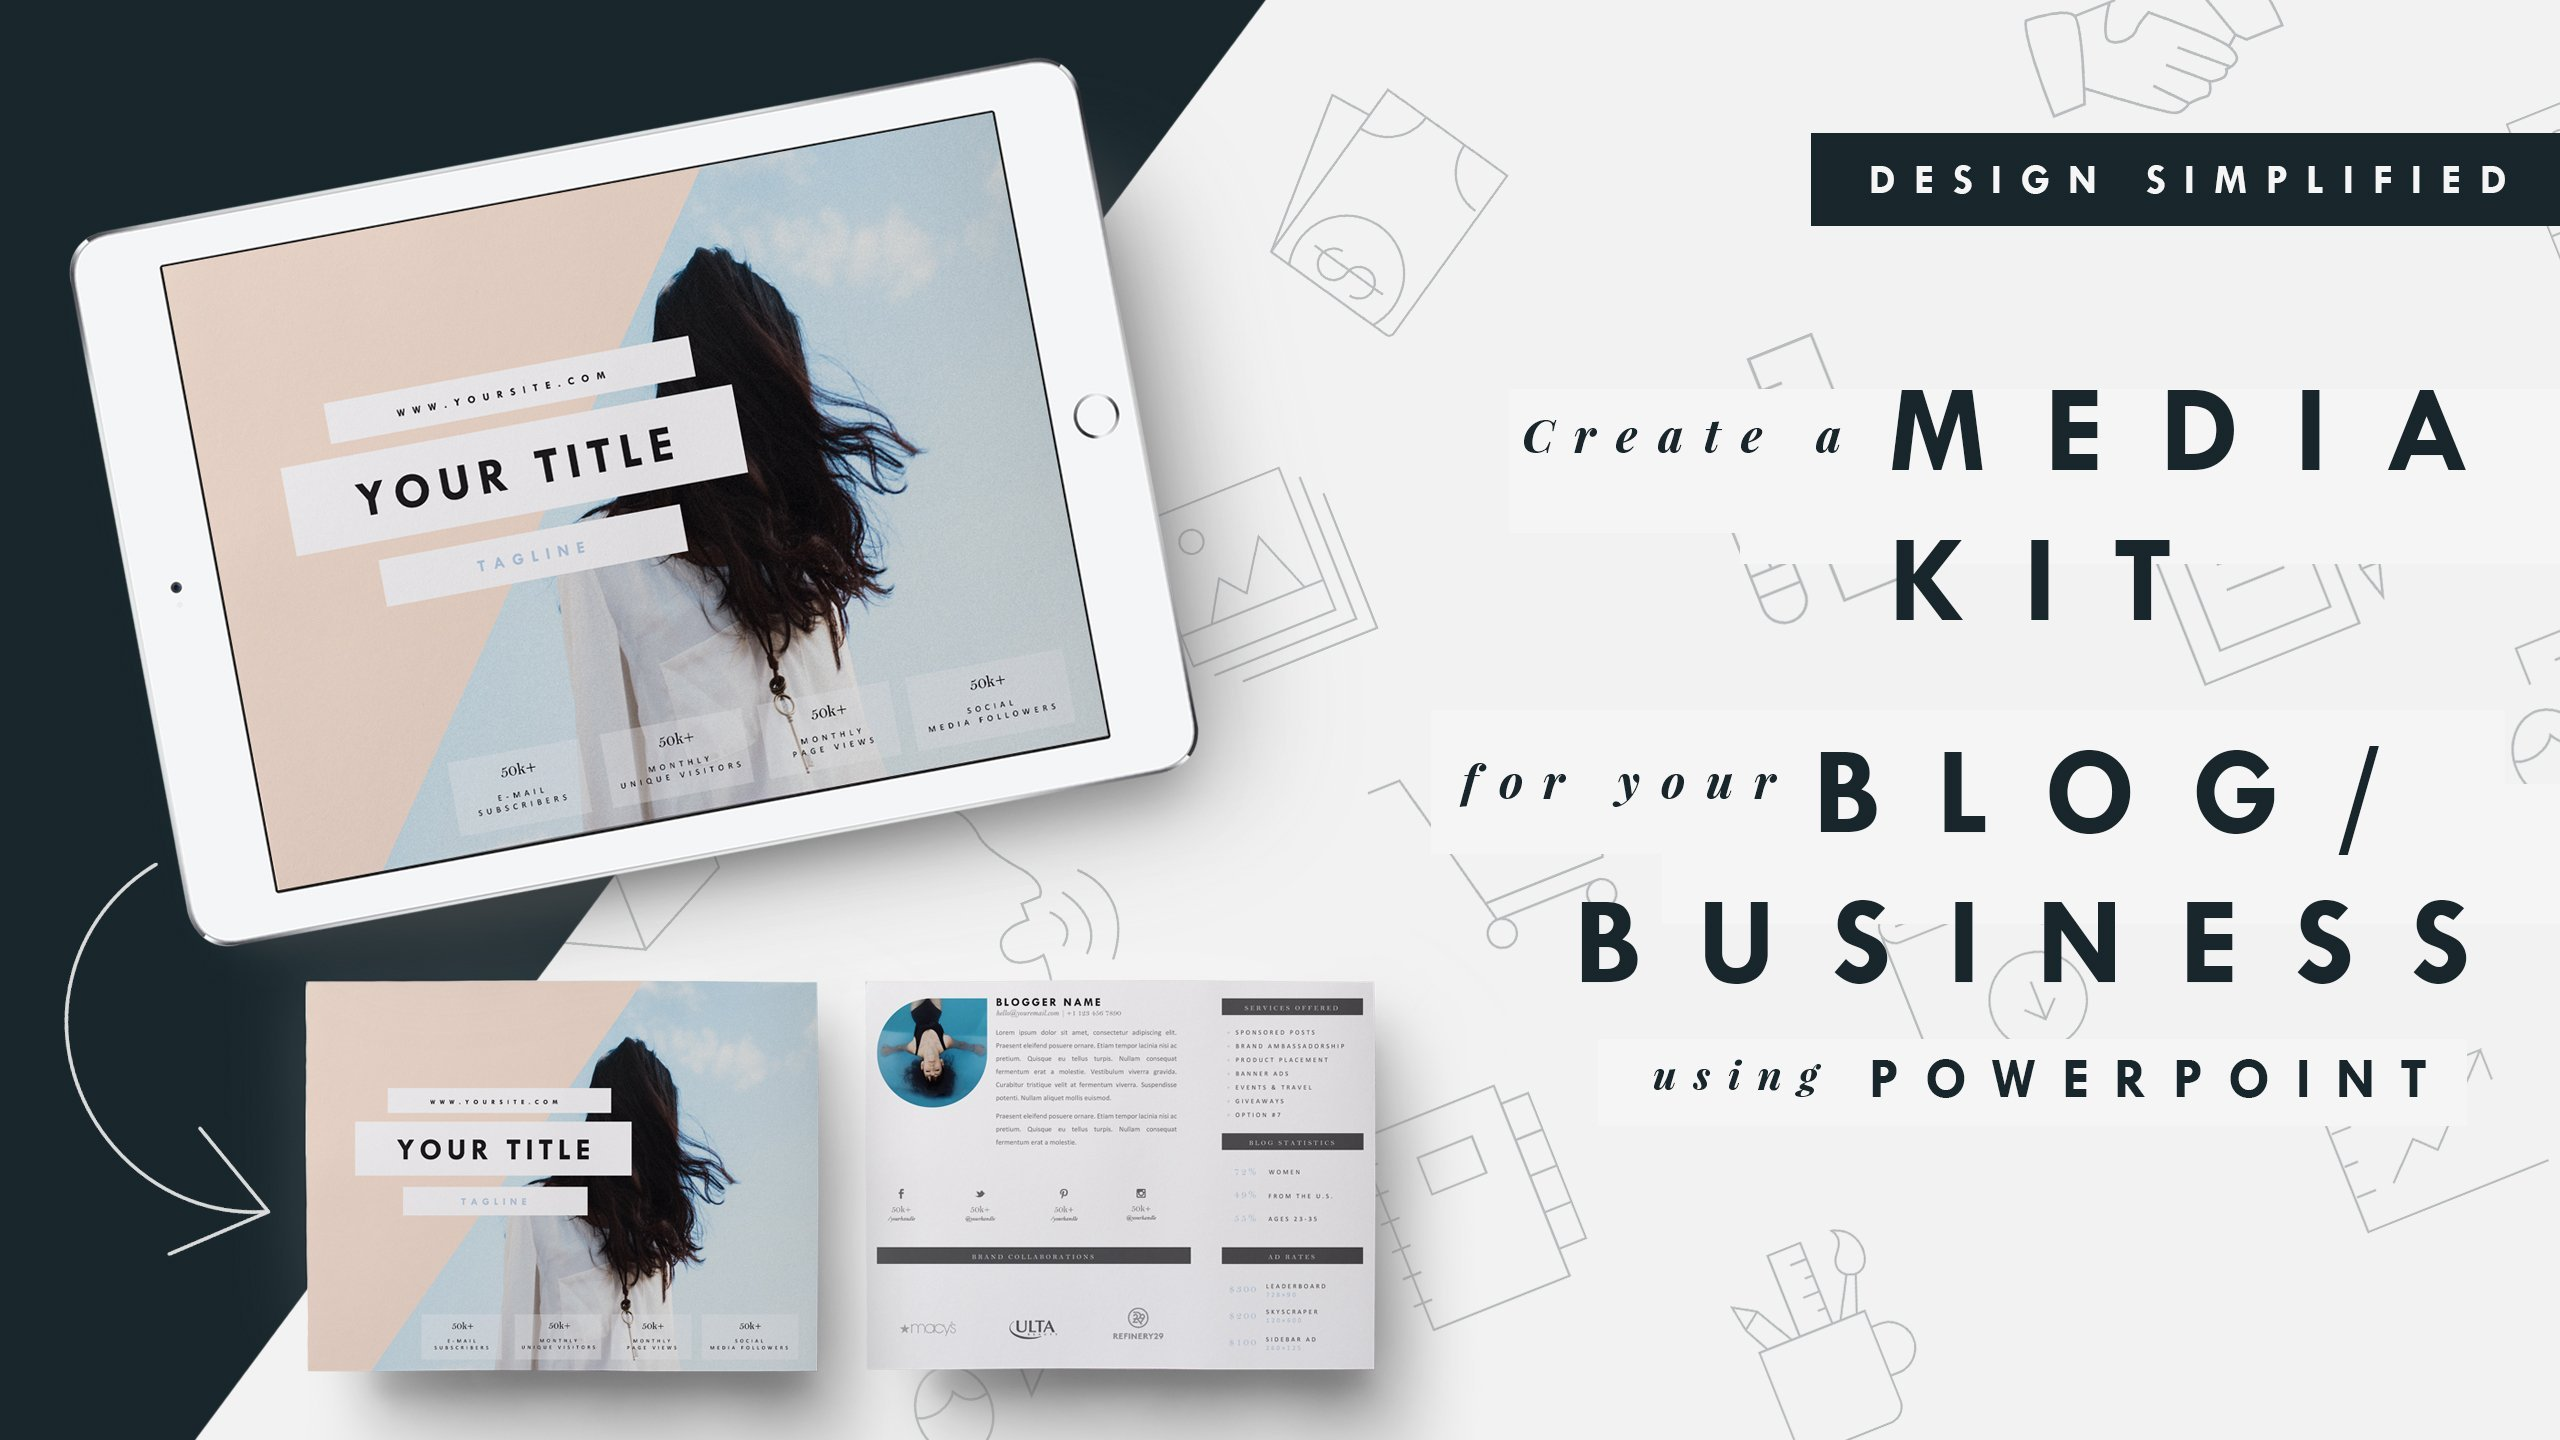 design simplified  create a media kit for your blog  business or product